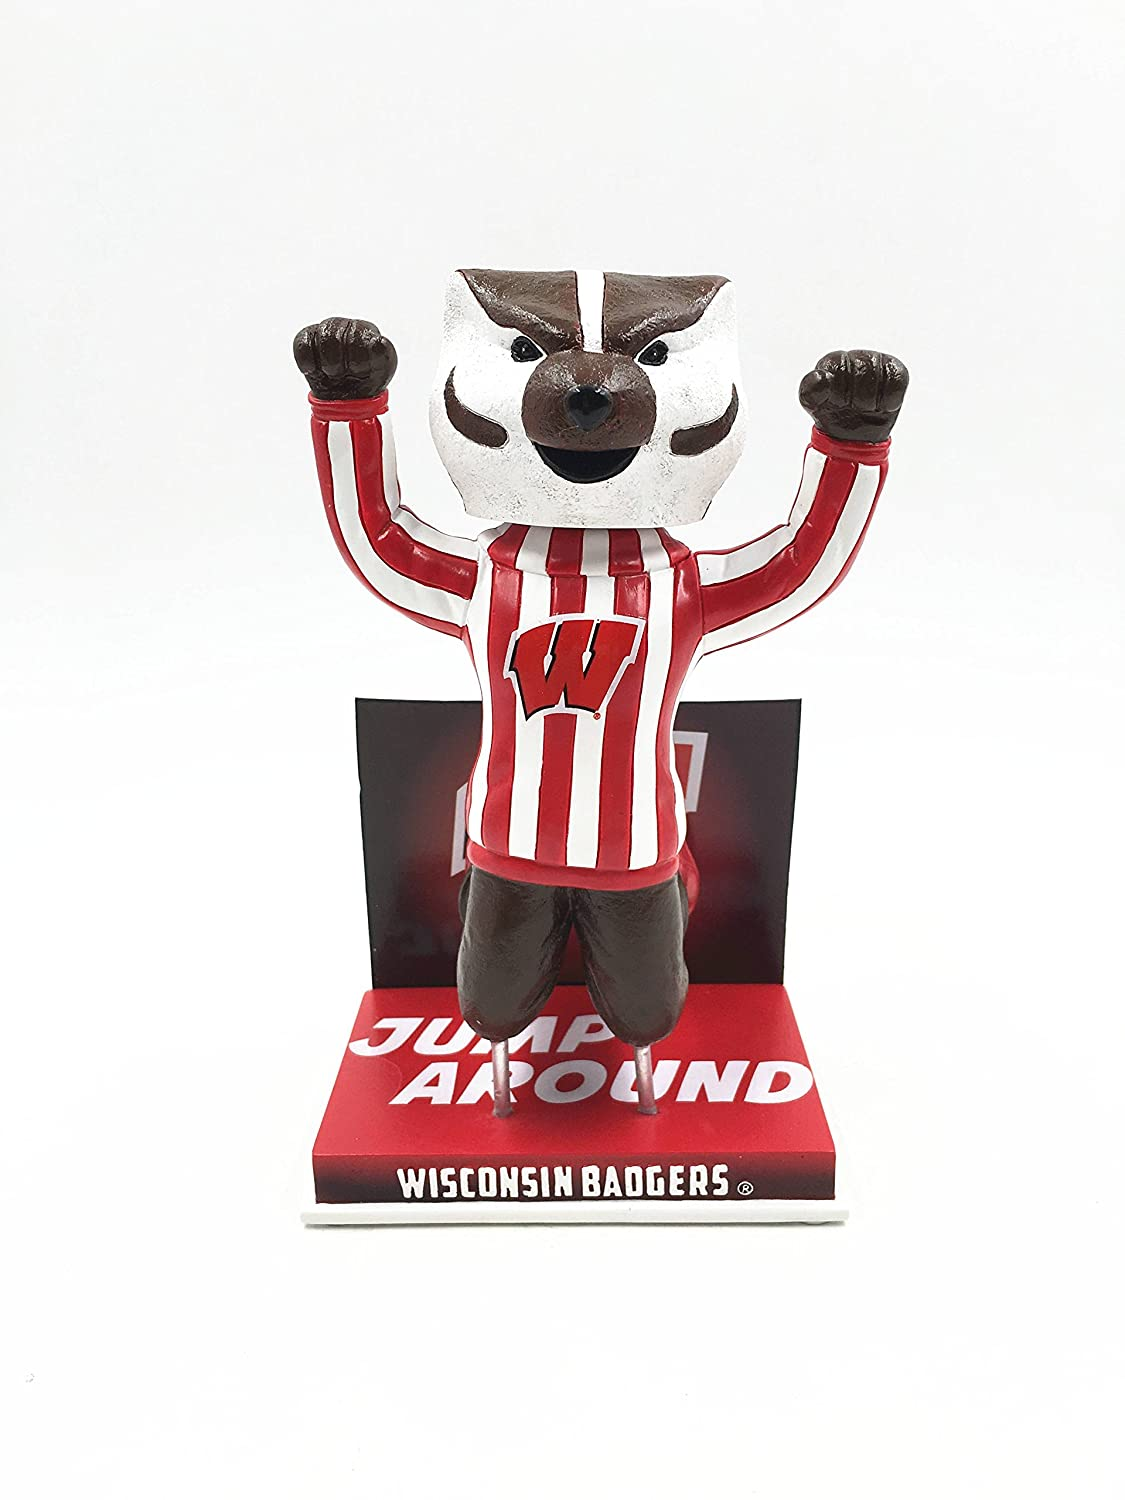 Bucky Badger Wisconsin Badgers Jump Around Special Edition